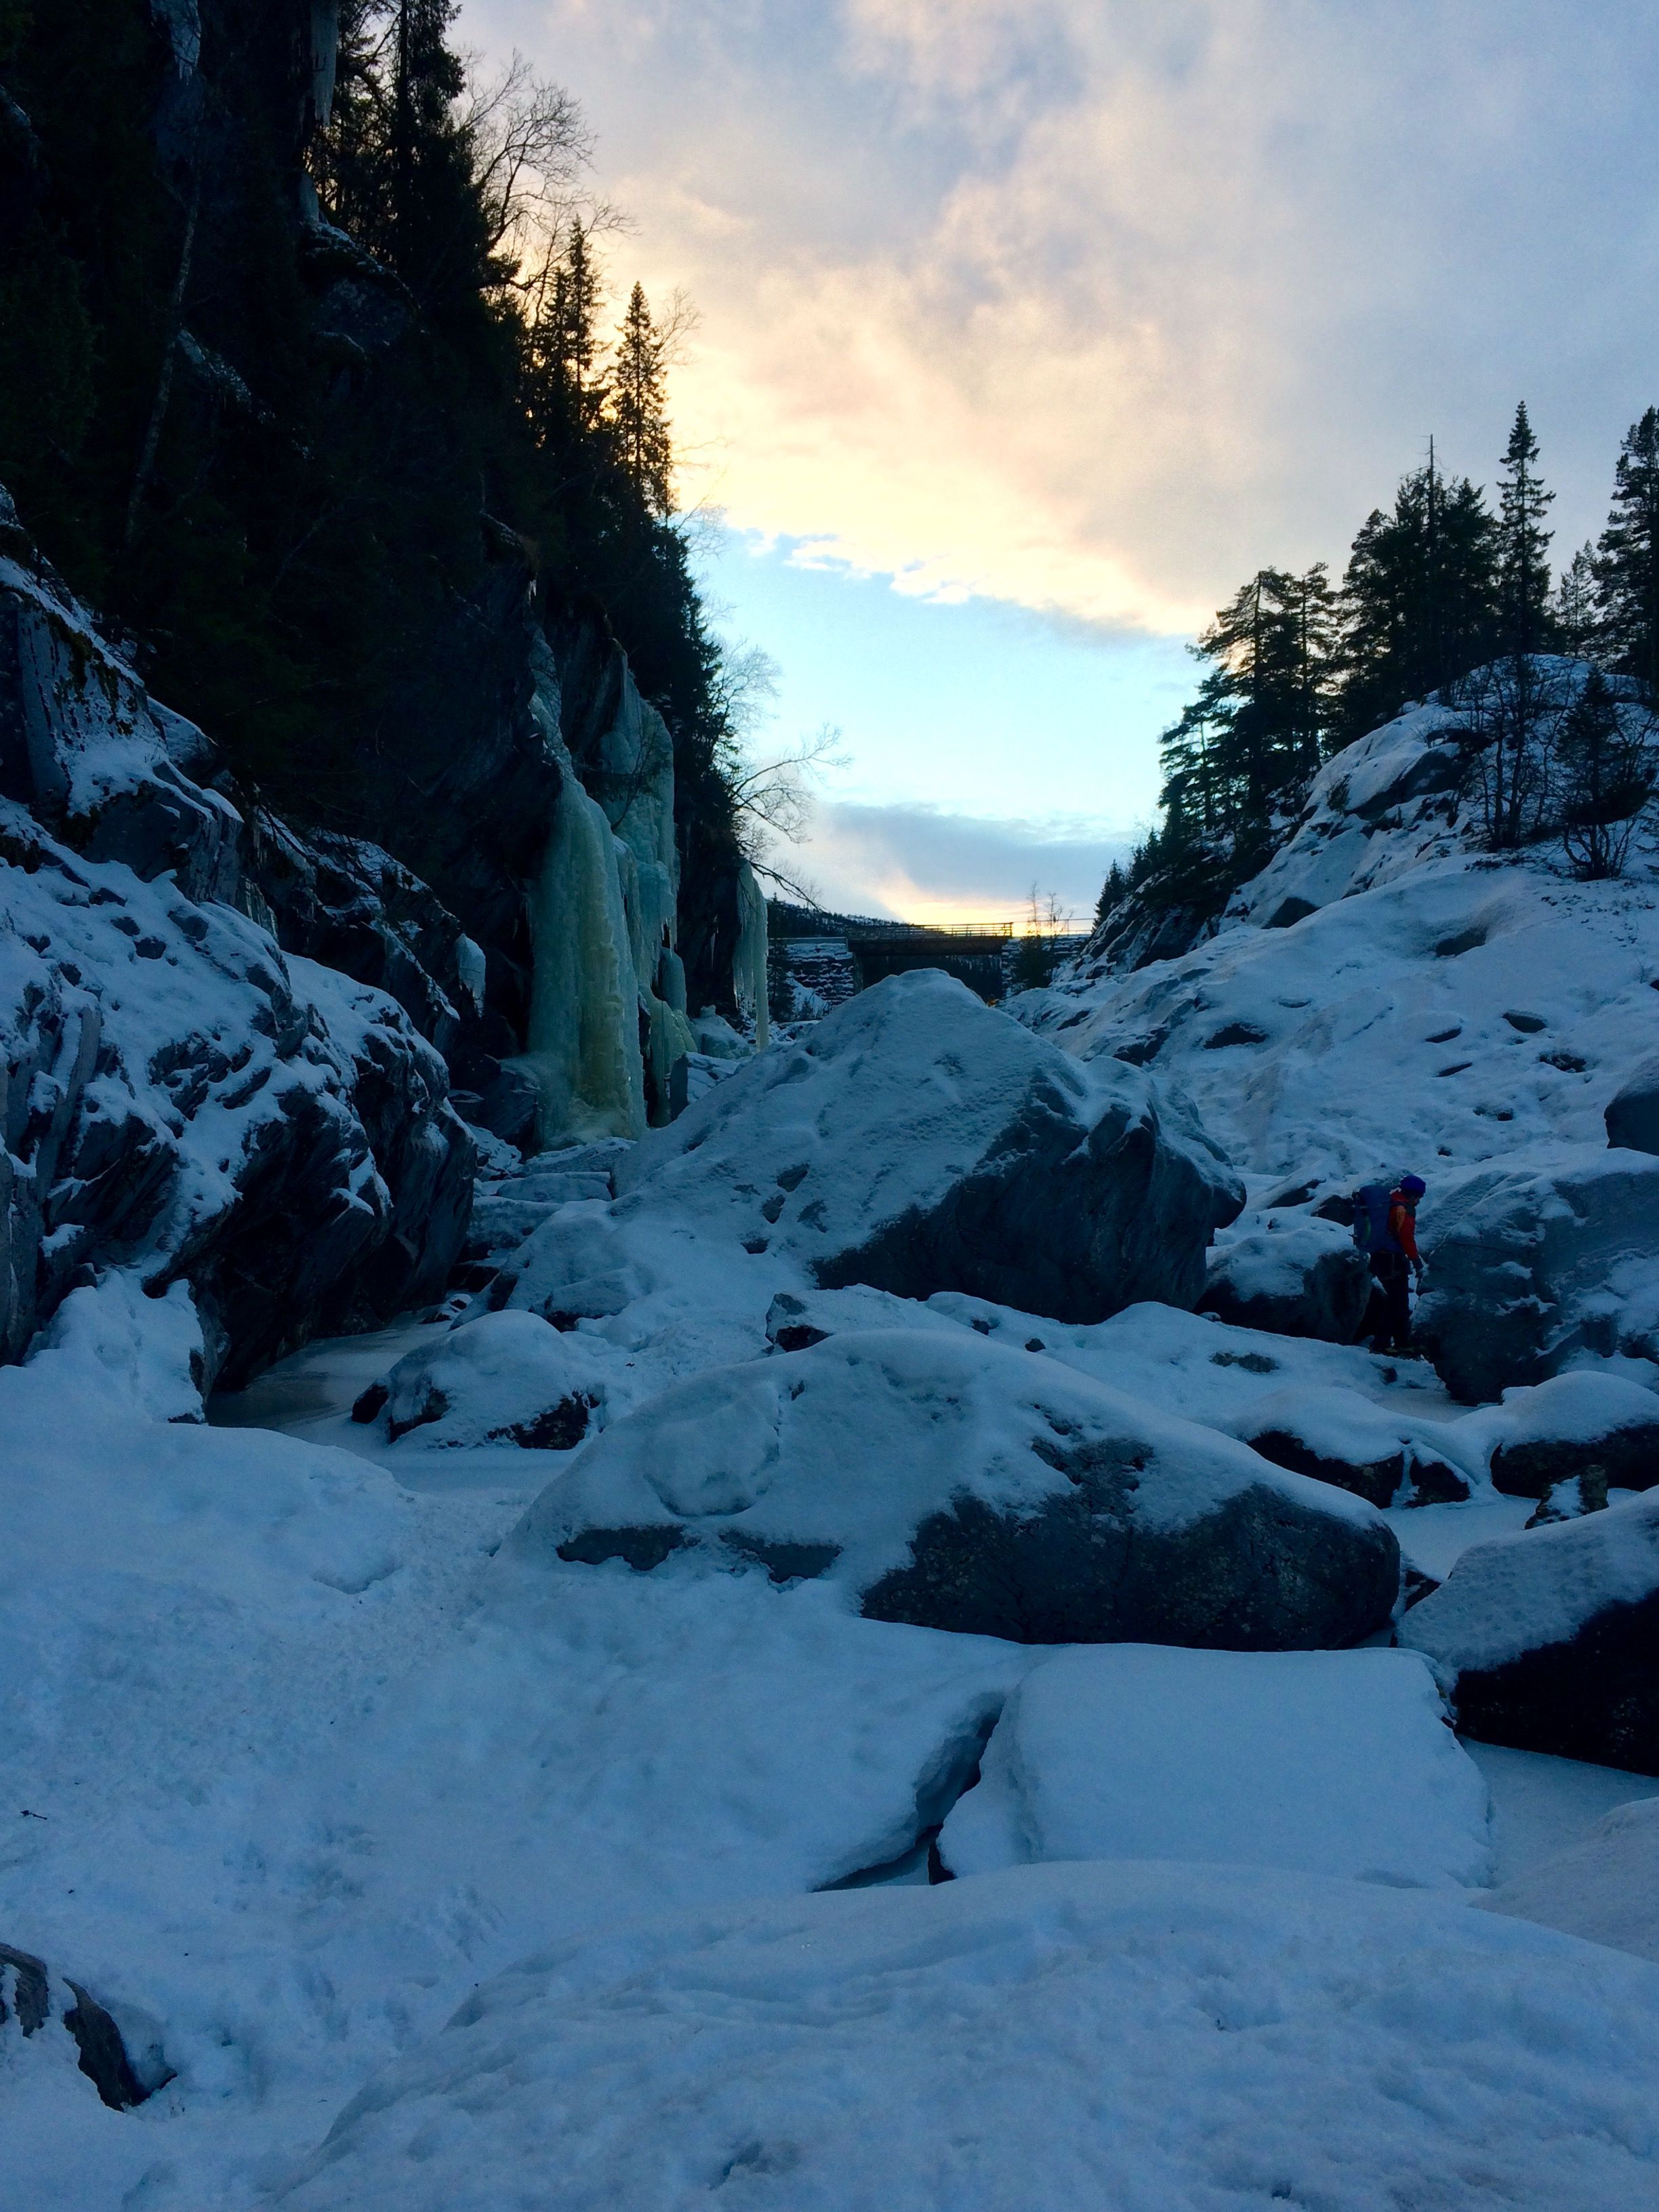 Pin by Jess Byrne on Adventure Adventure, Outdoor, Snow